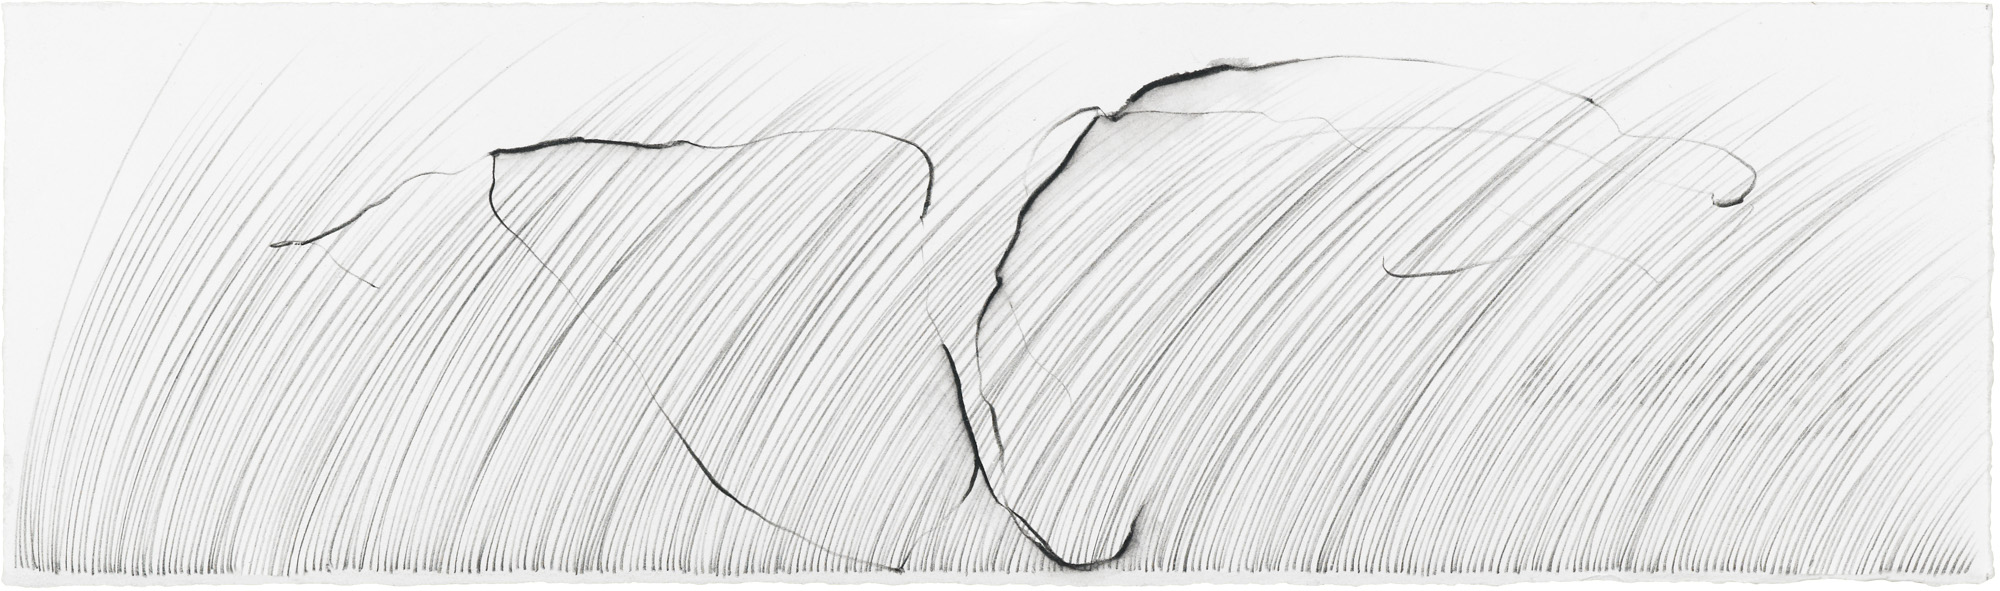 Grass Being, I   graphite and soluble pencil on cotton paper, 4 ¼ x 14 ½ inches, 2013